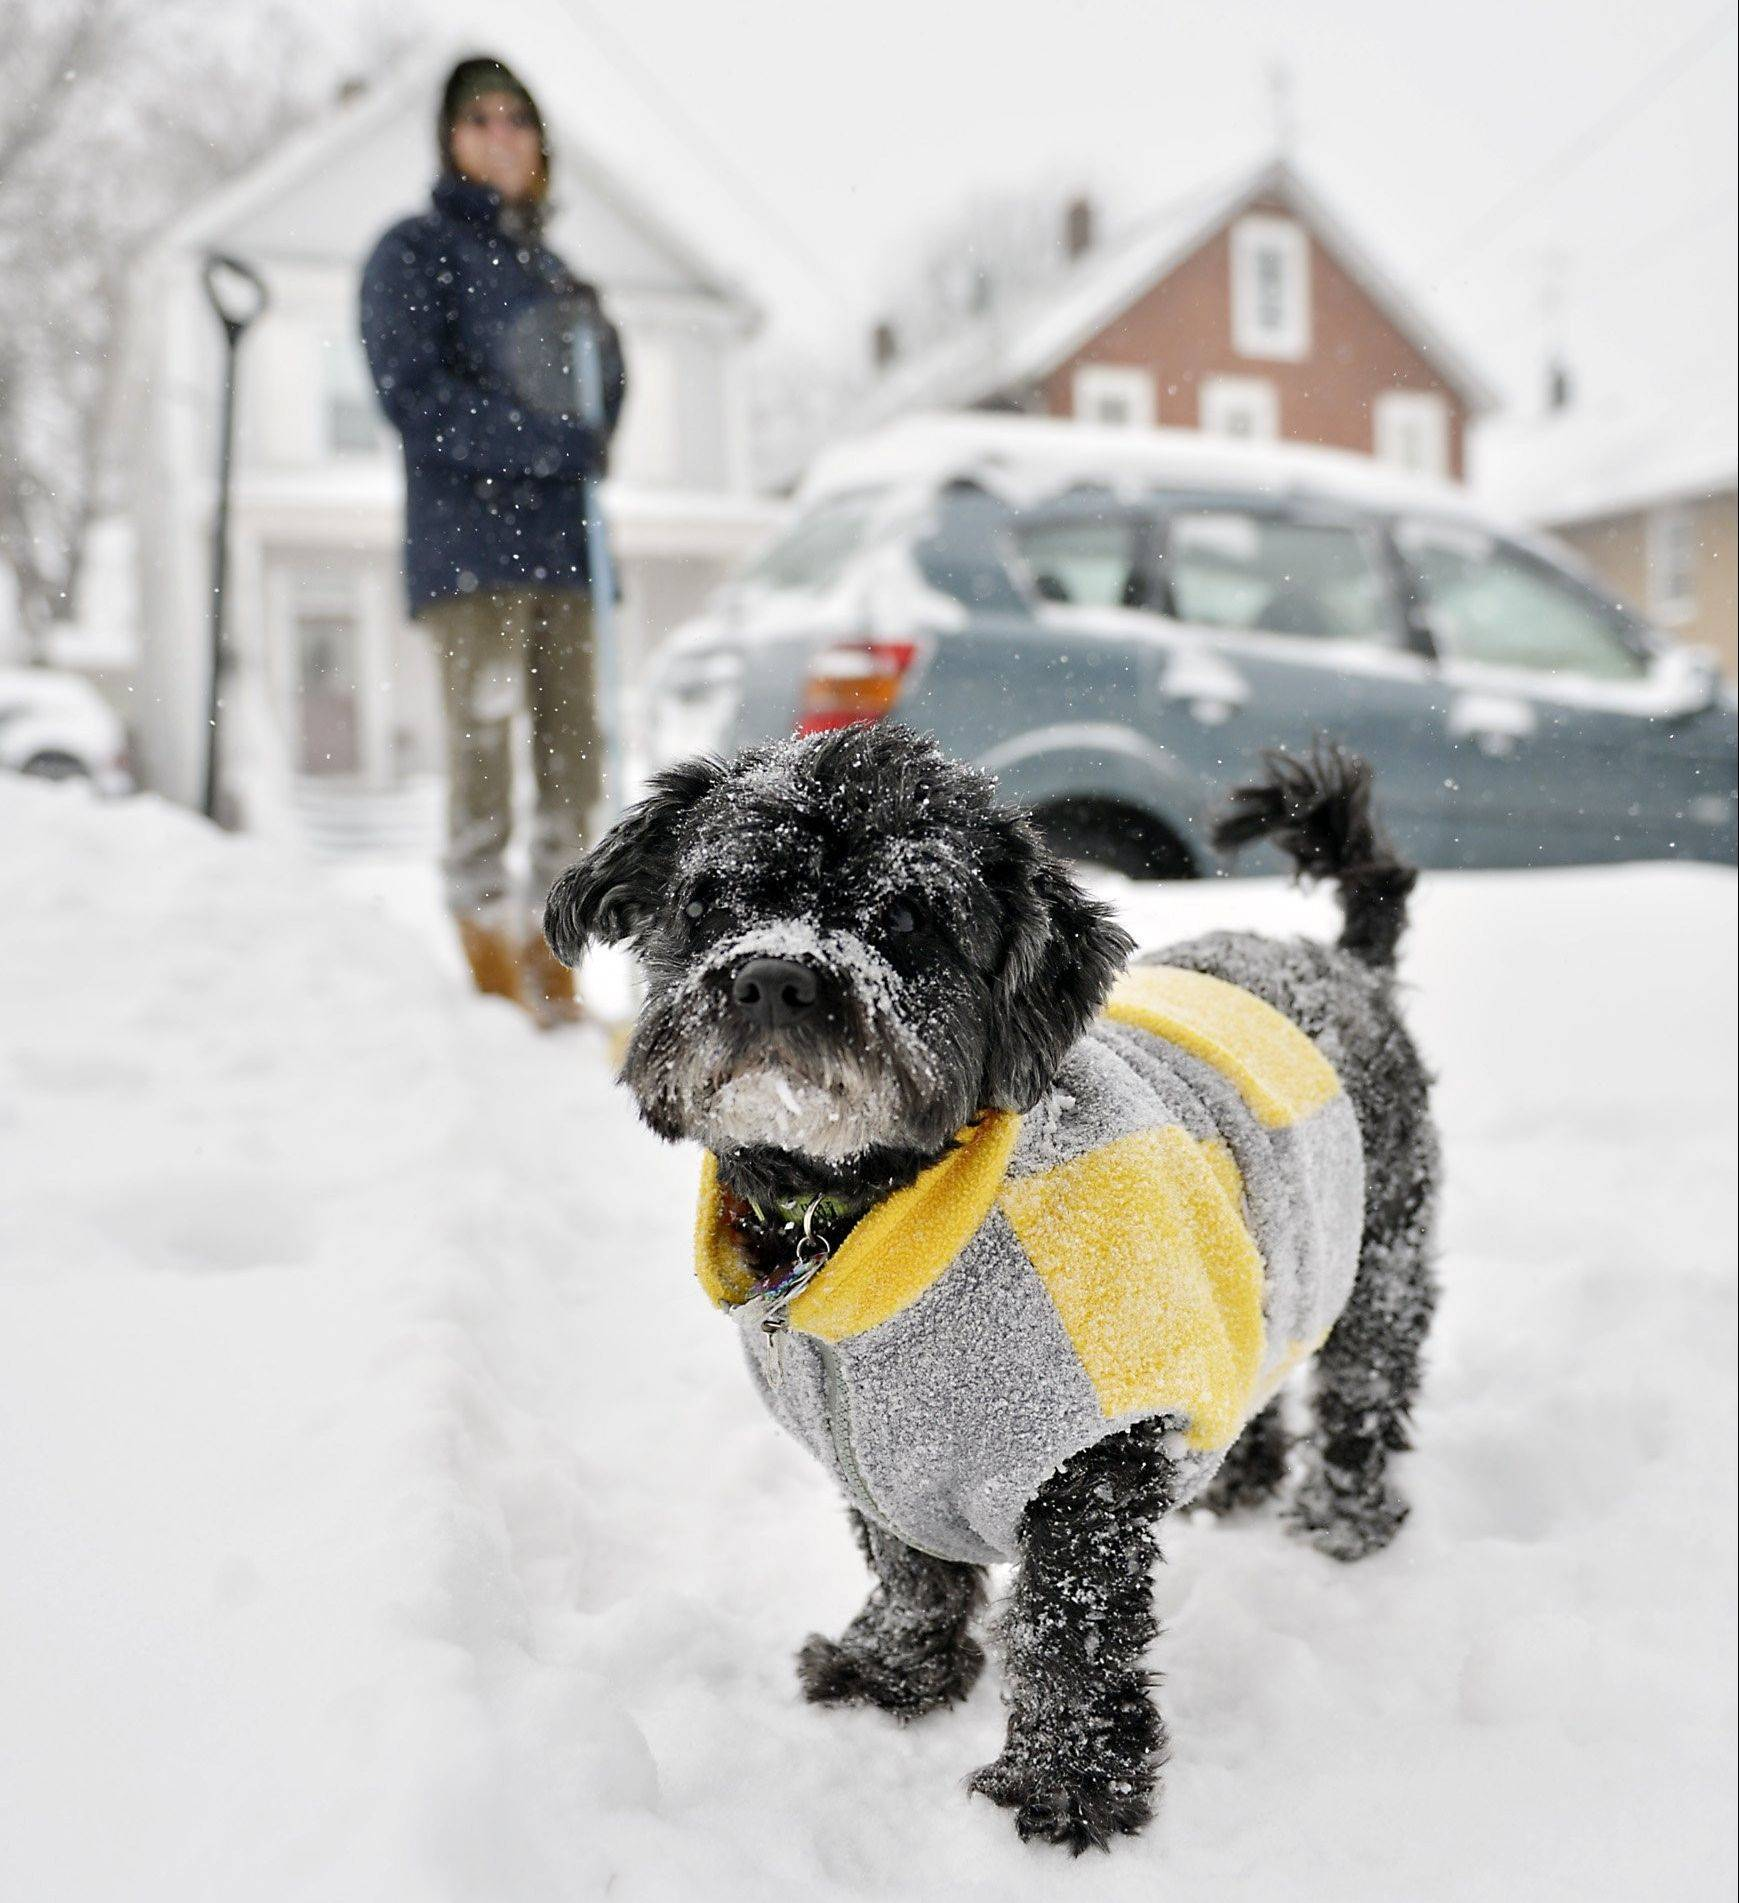 Snow sticks to Nikko's fur and sweater as the 10-year-old Havanese dog plays in the snow with his owner, Laurie Edwards, at rear, outside their house in Erie, Pa., Thursday. A winter storm promising significant snowfall, strong winds and frigid air bore down Thursday on the Northeast.